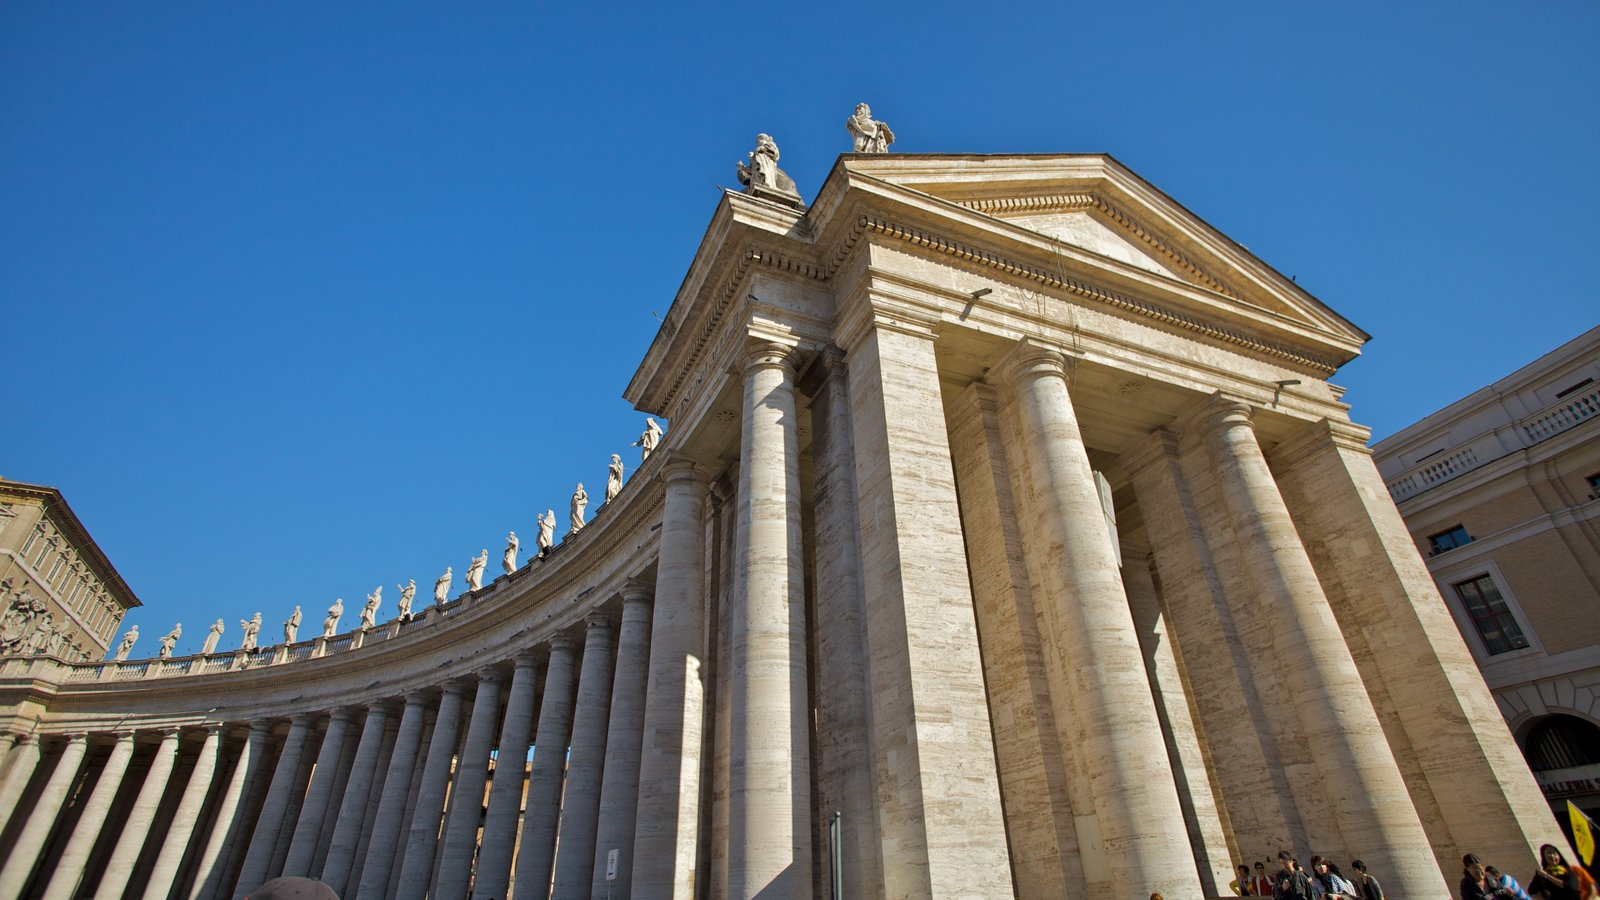 Piazza San Pietro which includes a square or plaza and heritage architecture